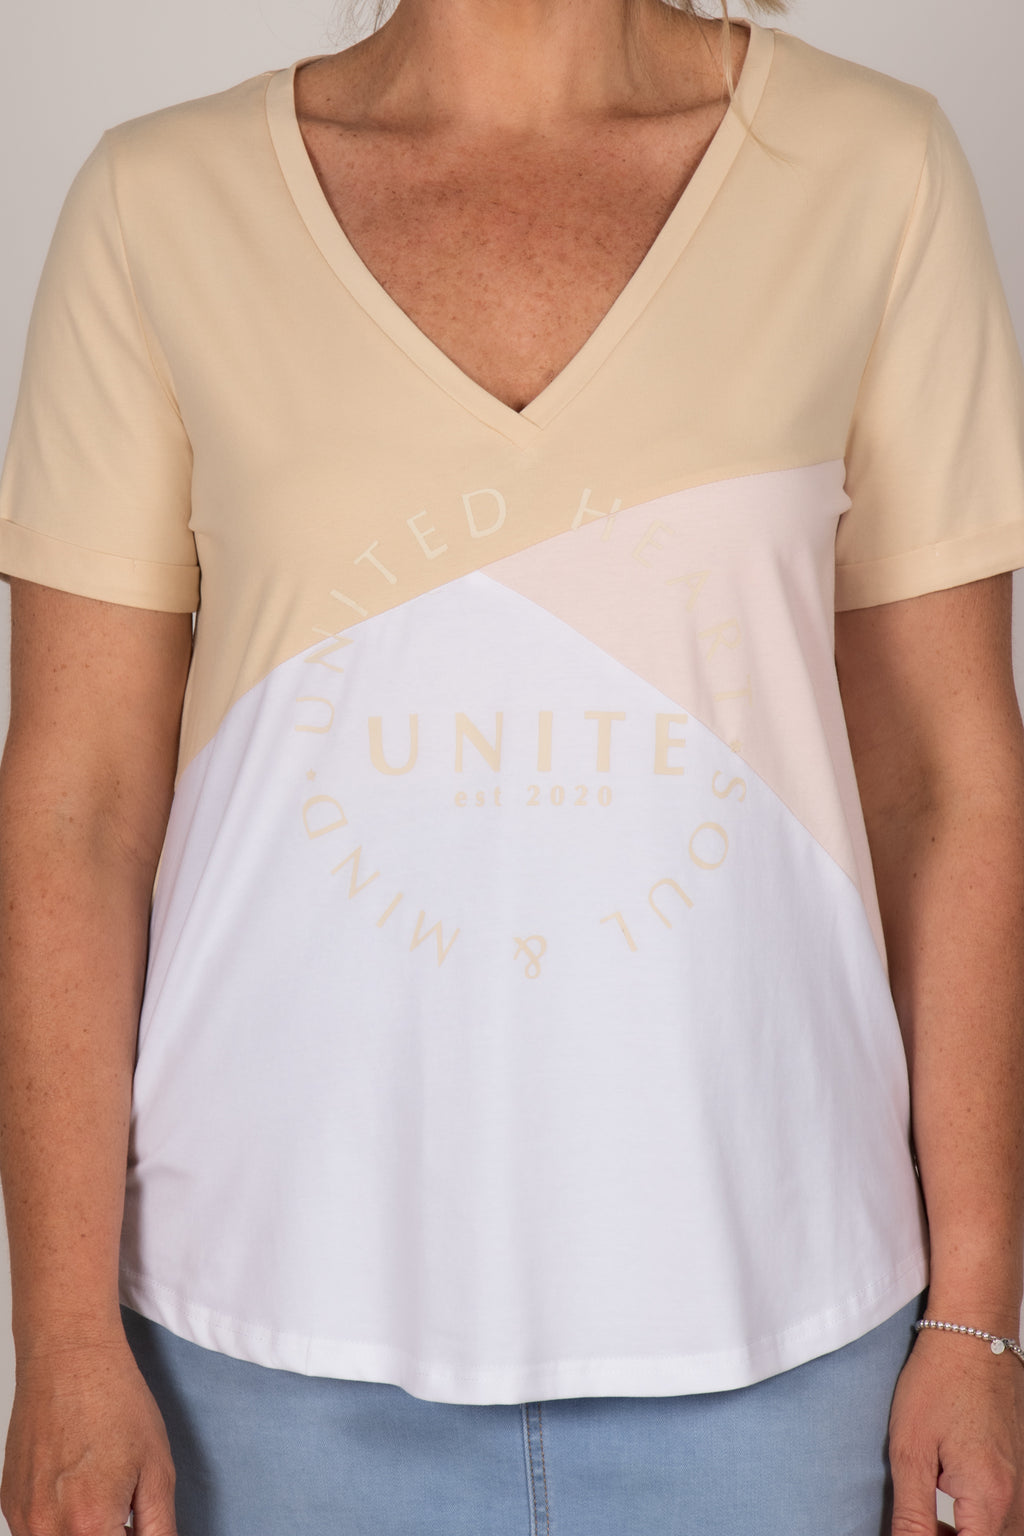 United Tee in Beige/White/Pink